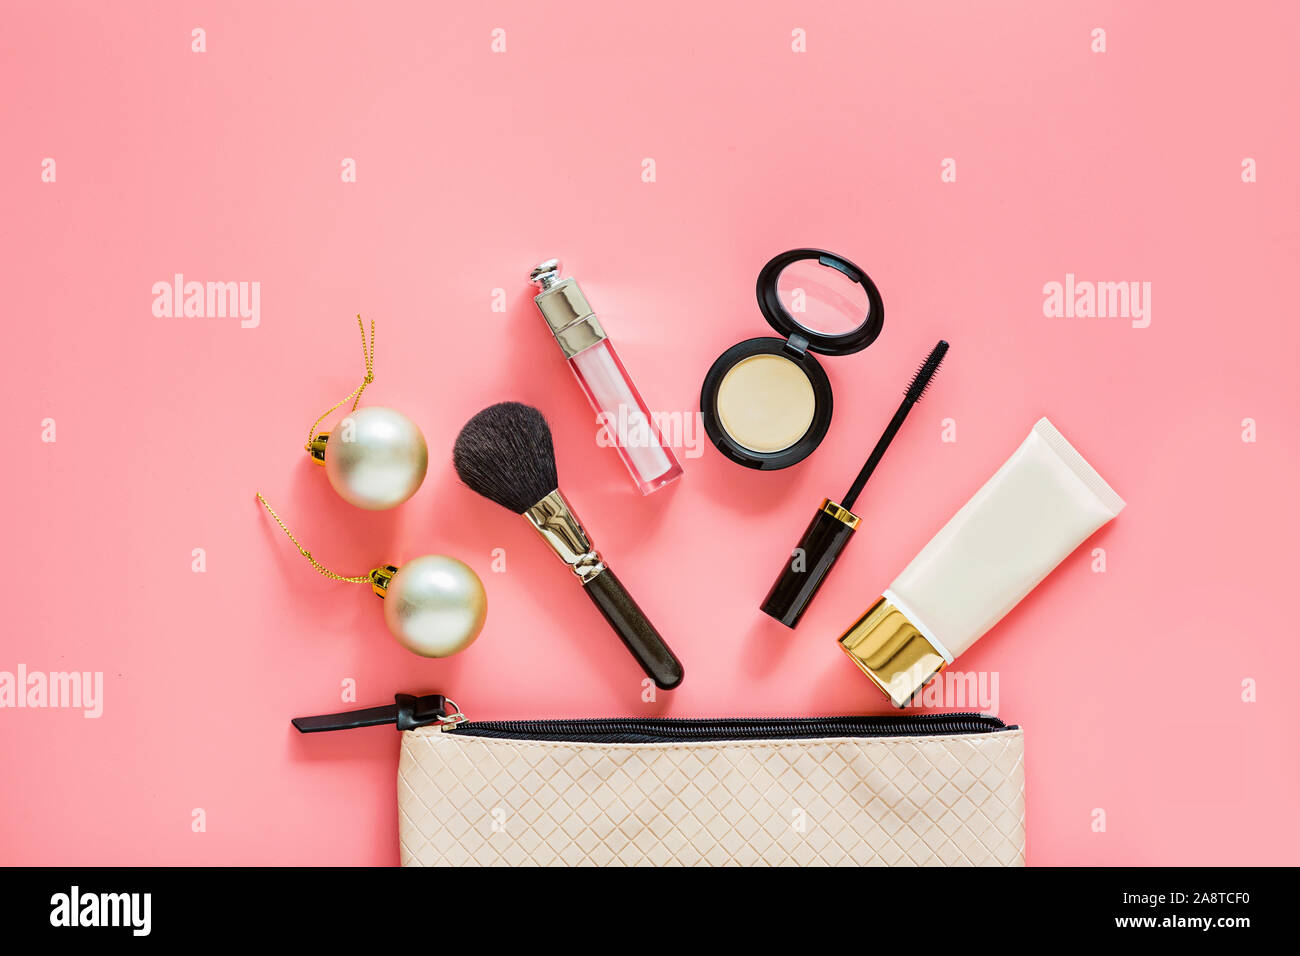 Christmas Makeup.Products 2020 Flat lay composition with makeup products and Christmas decor on